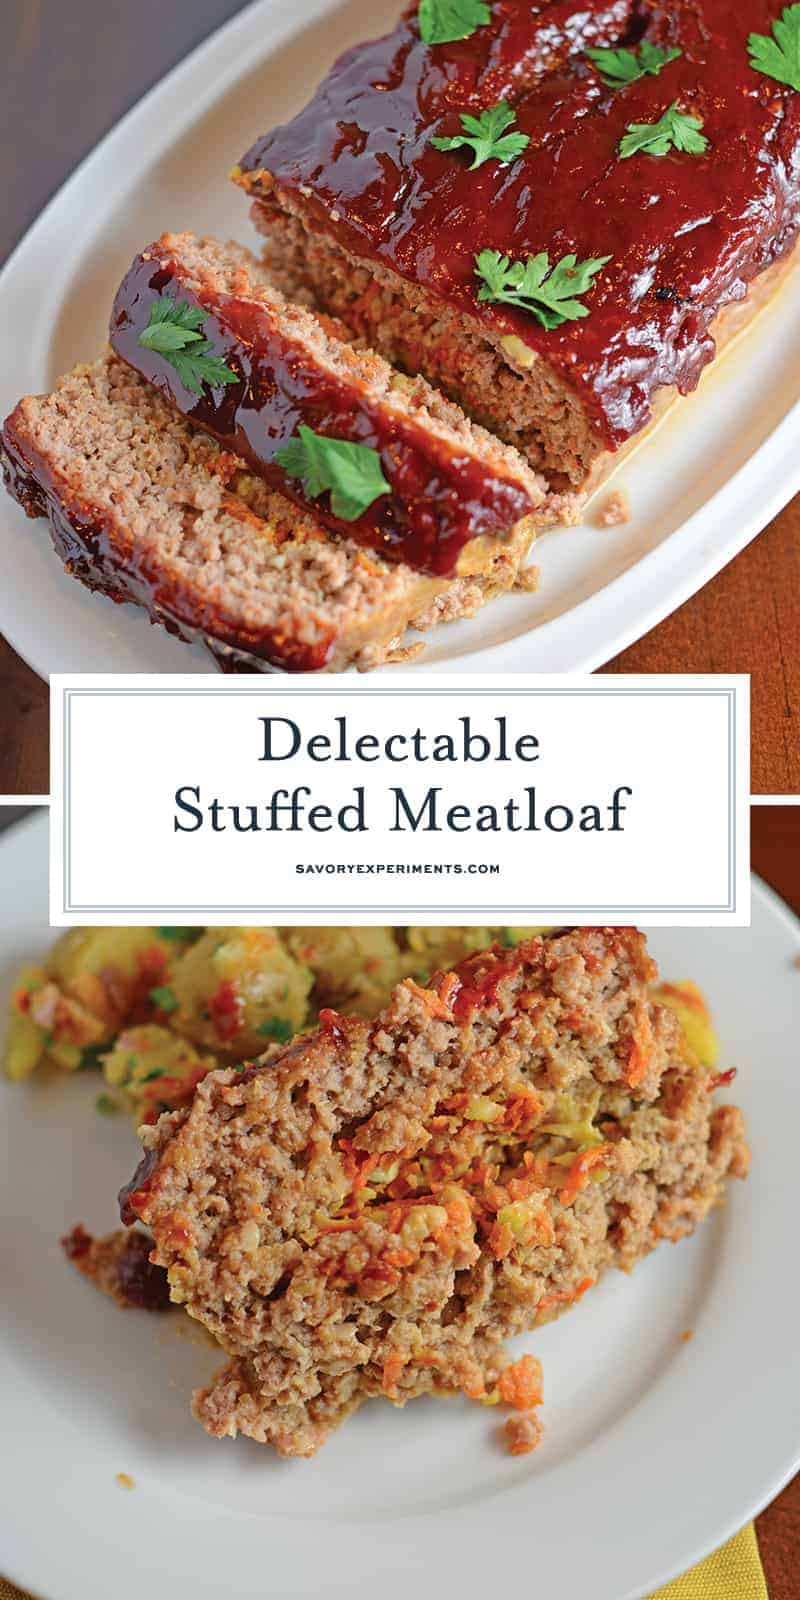 Stuffed Meatloaf is a tender meat mix stuffed with shredded vegetables and topped with a zesty and sweet sauce. The perfect comfort meal! #bestmeatloafrecipe #stuffedmeatloaf www.savoryexperiments.com